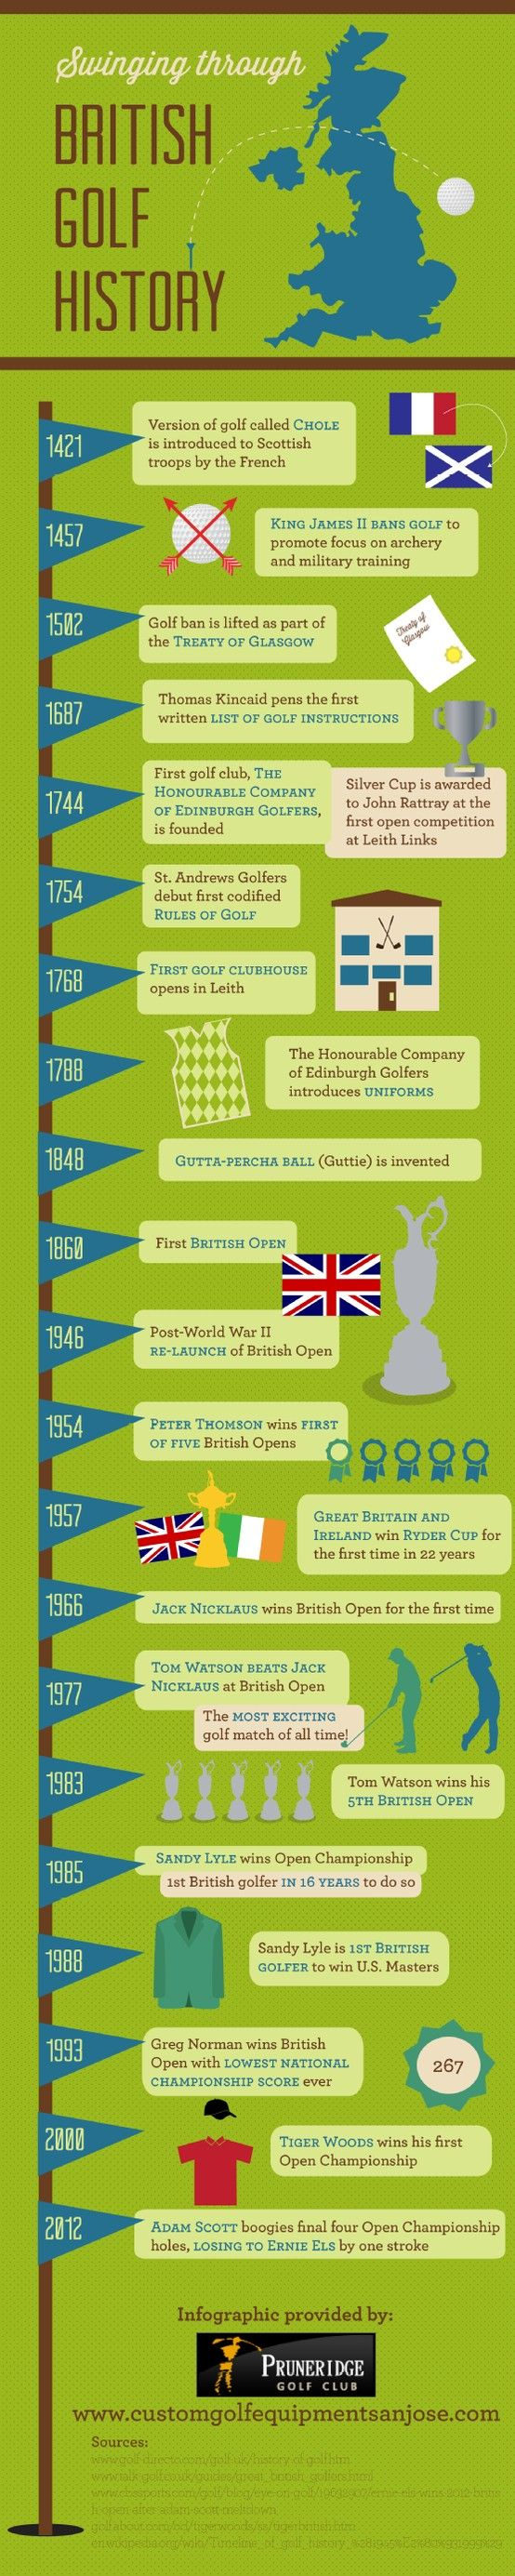 Do you know how golf became as popular as it is today